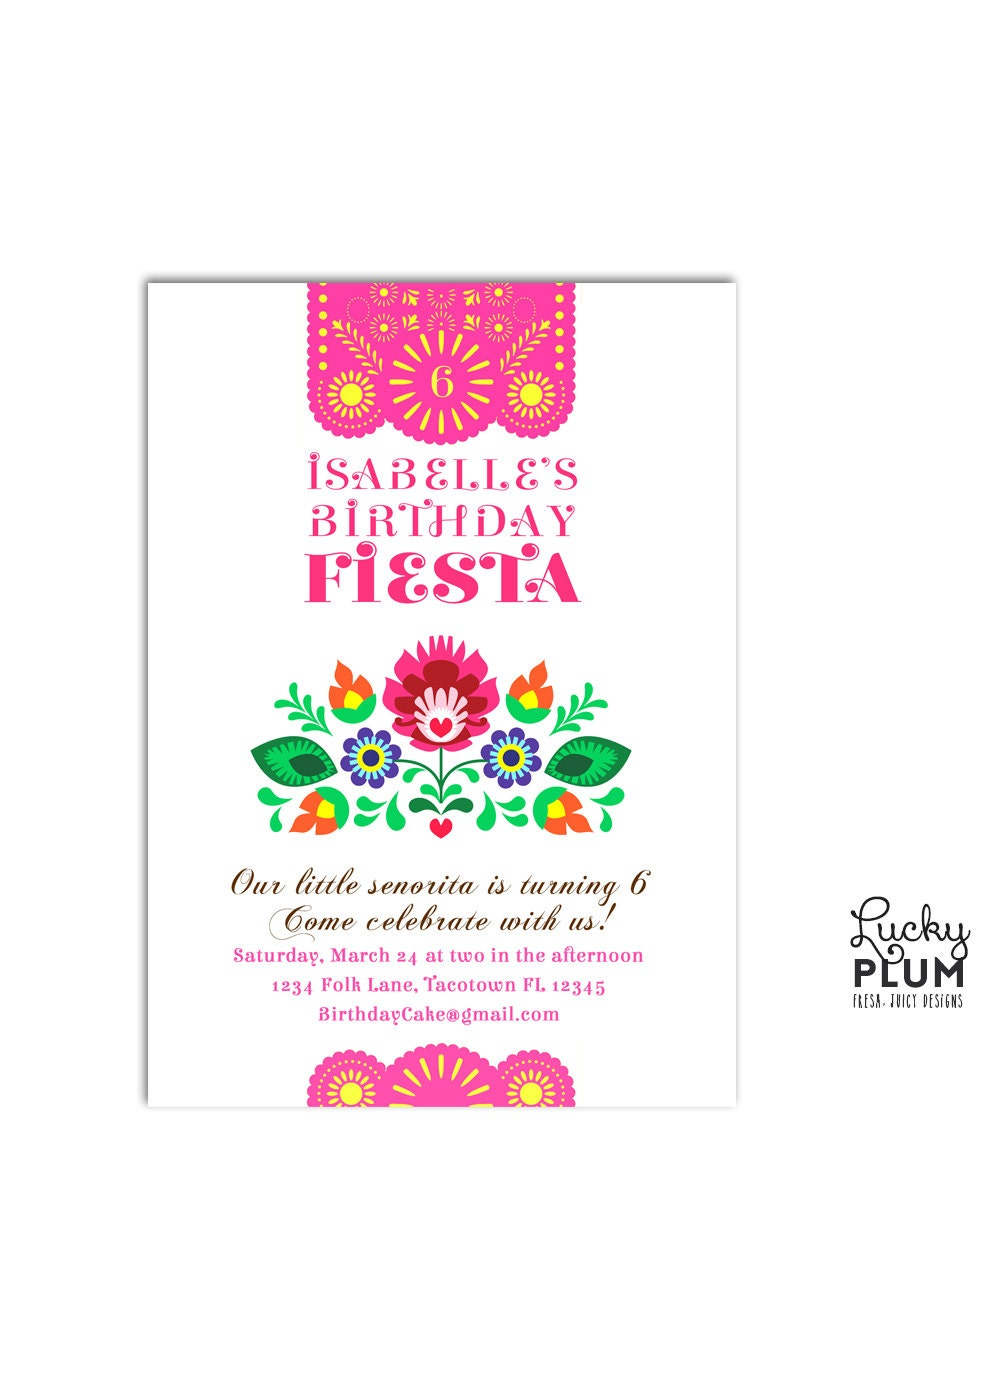 fiesta birthday invitation    papel picado invitation    folk